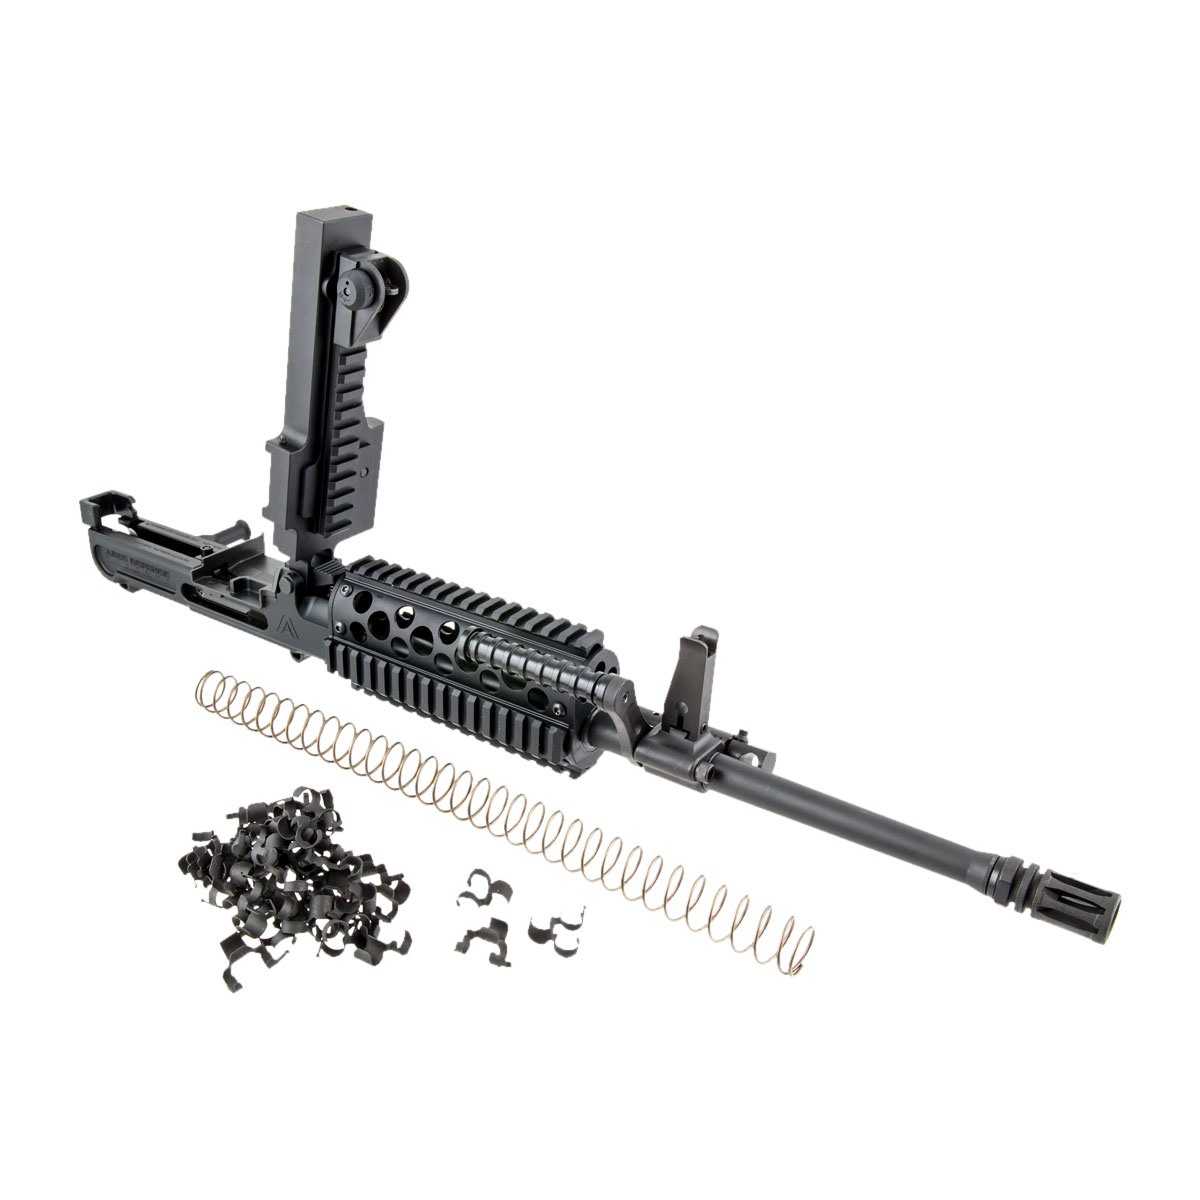 Mcr Belt Fed Upper Receiver Full Auto